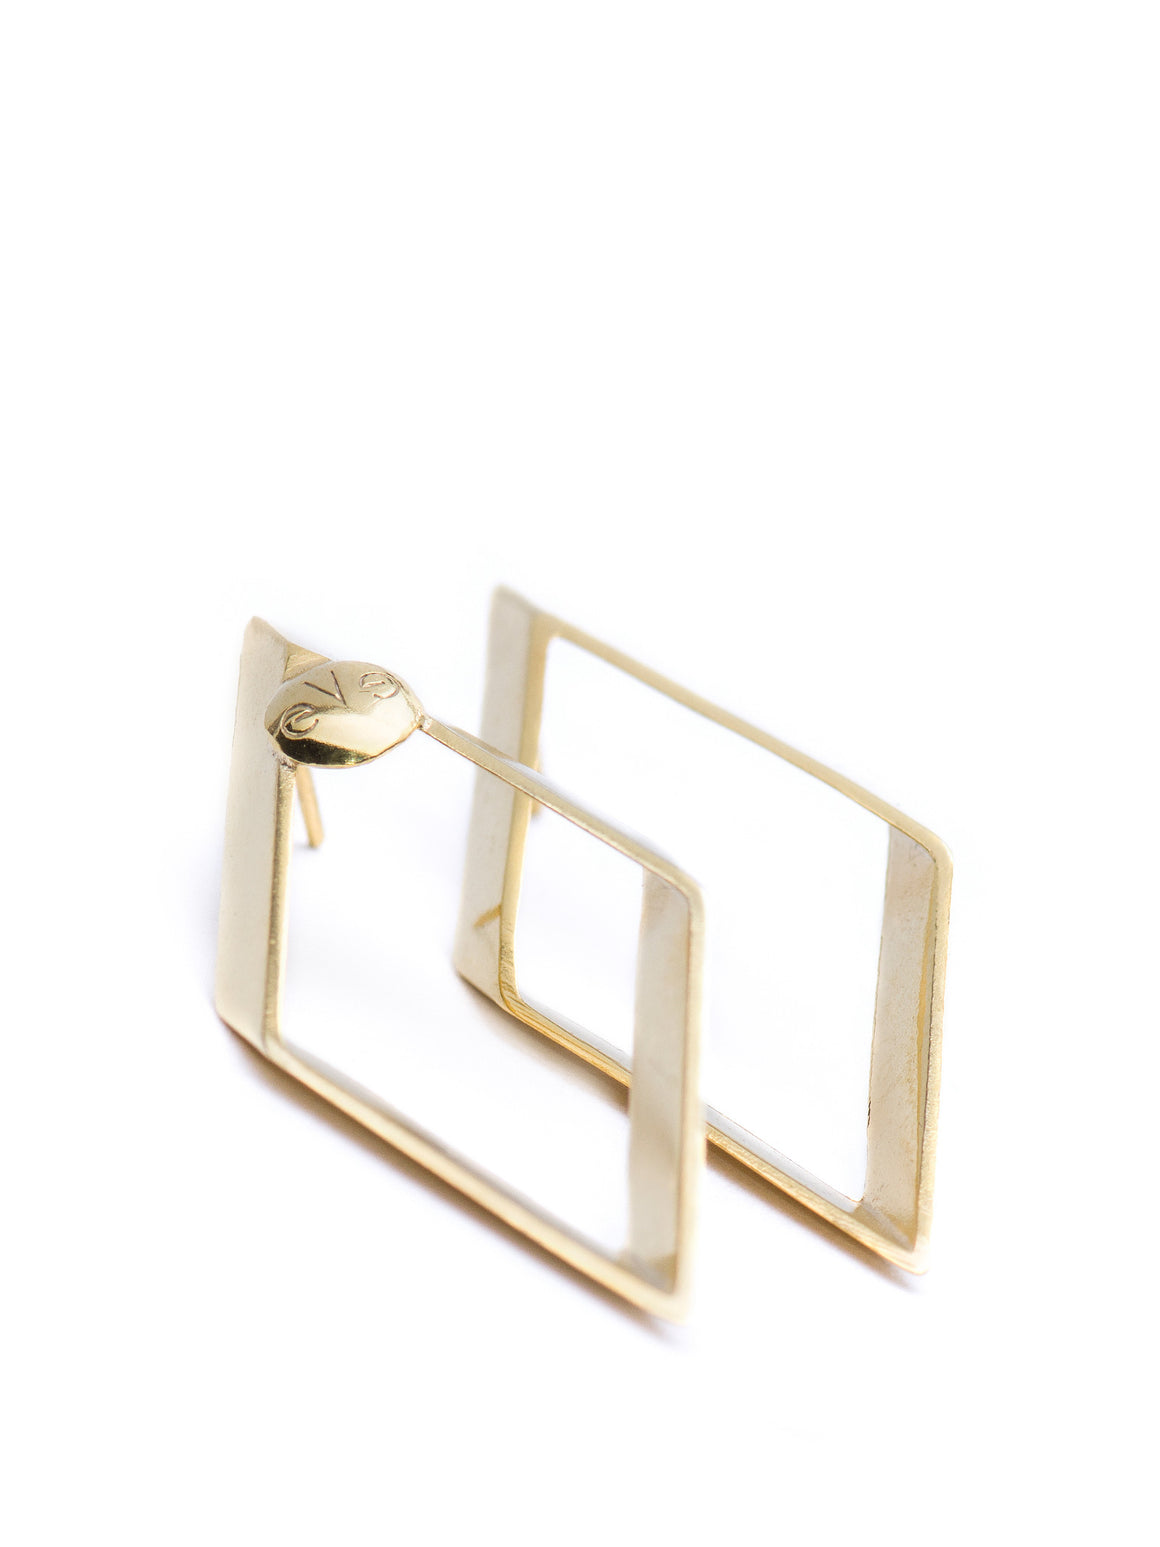 PURE GEOMETRY - Rombus earrings